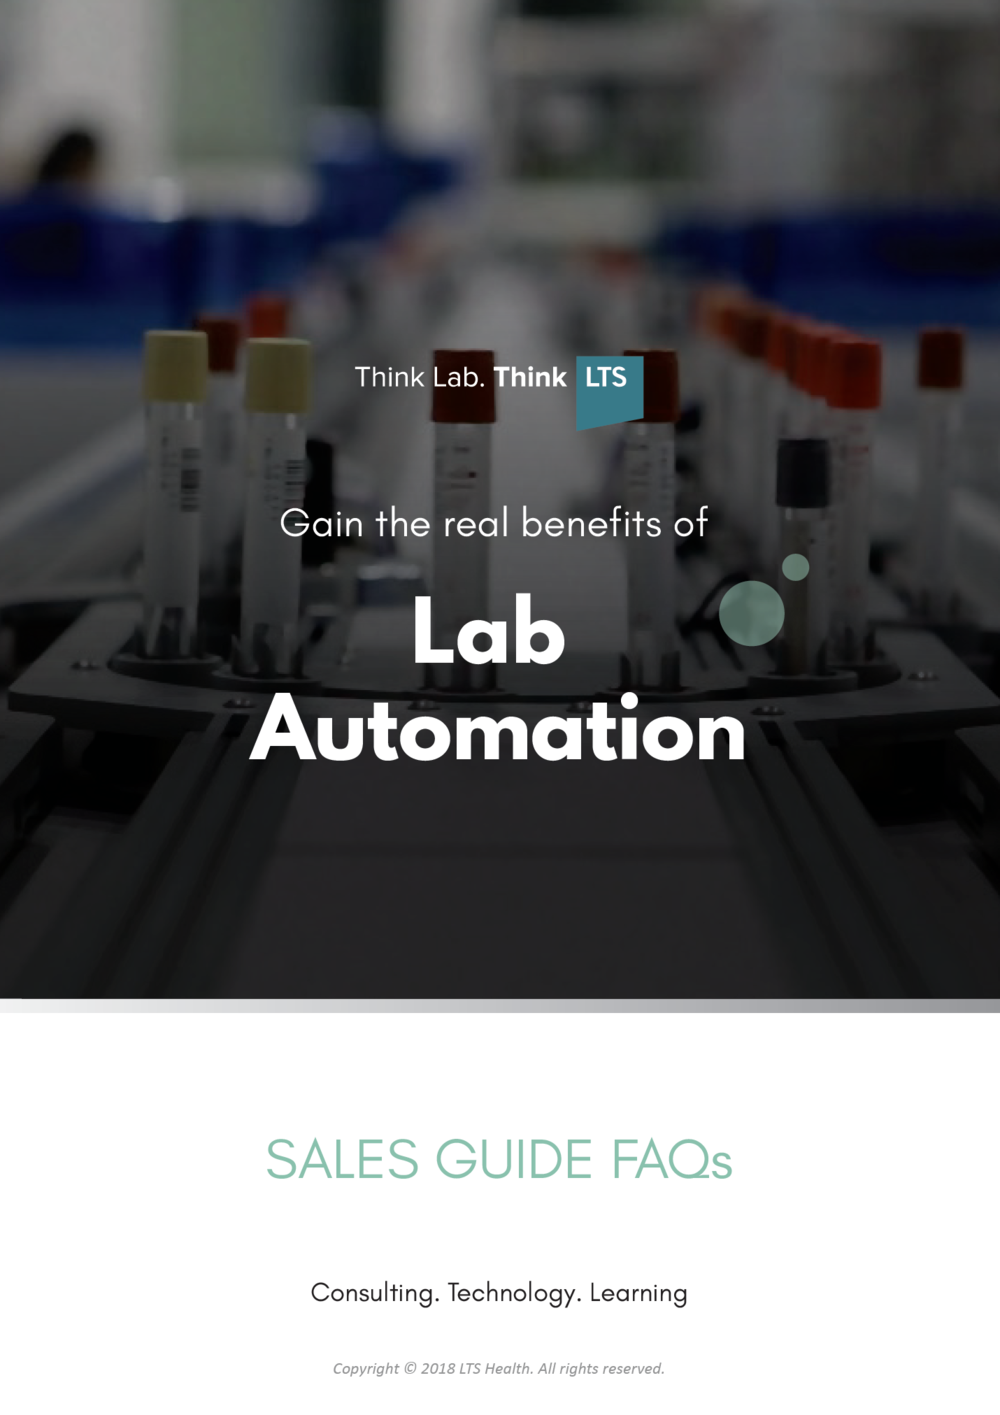 Lab Automation - Sales Guide FAQS